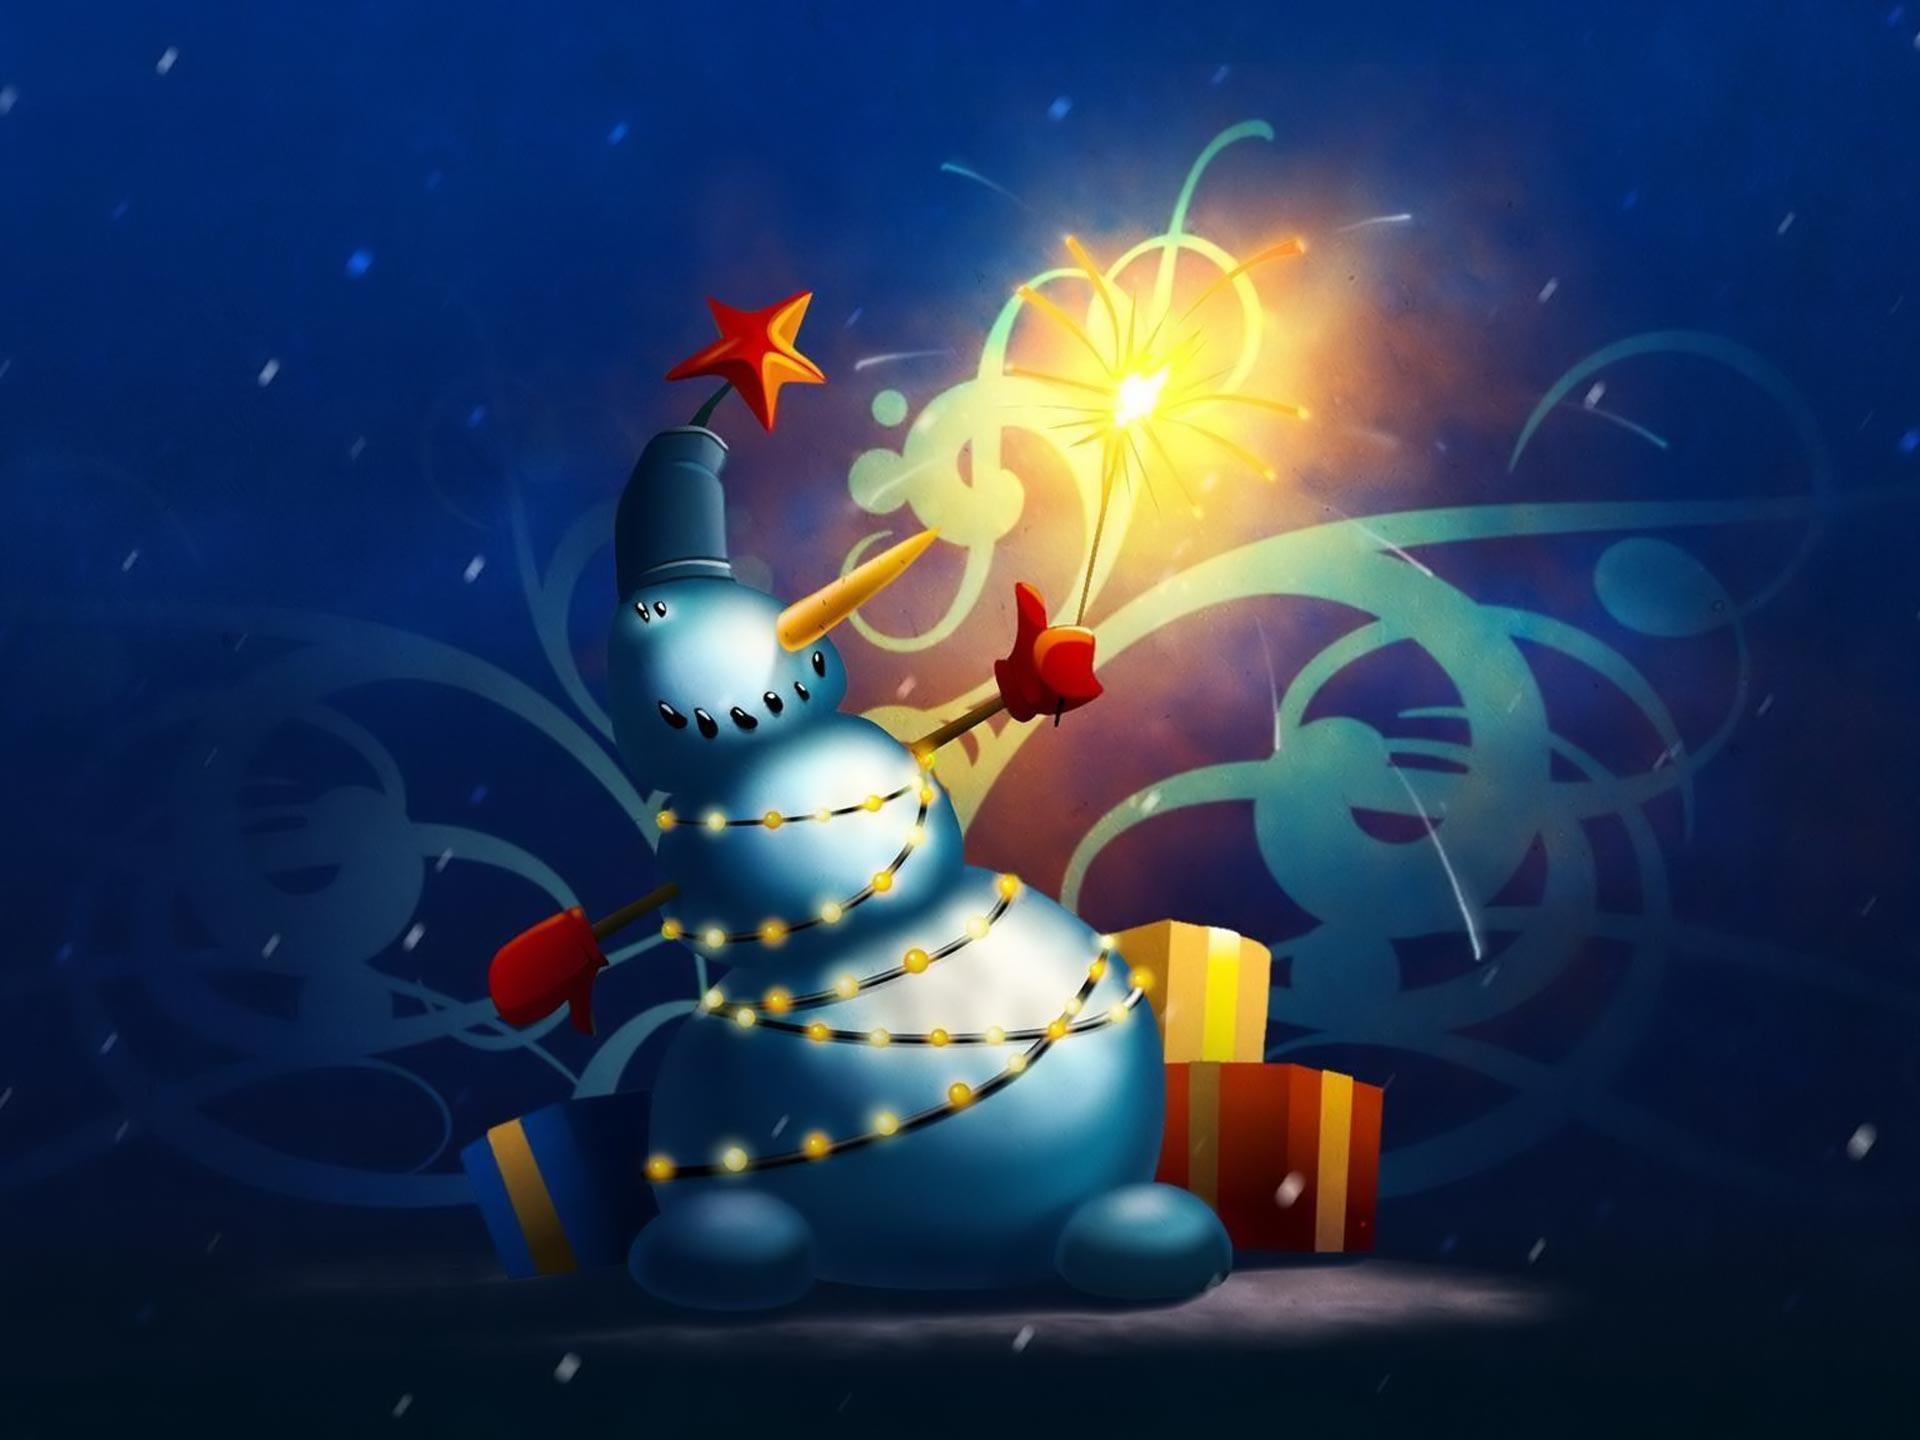 Desktop Wallpapers · Gallery · Miscellaneous · Christmas snowman